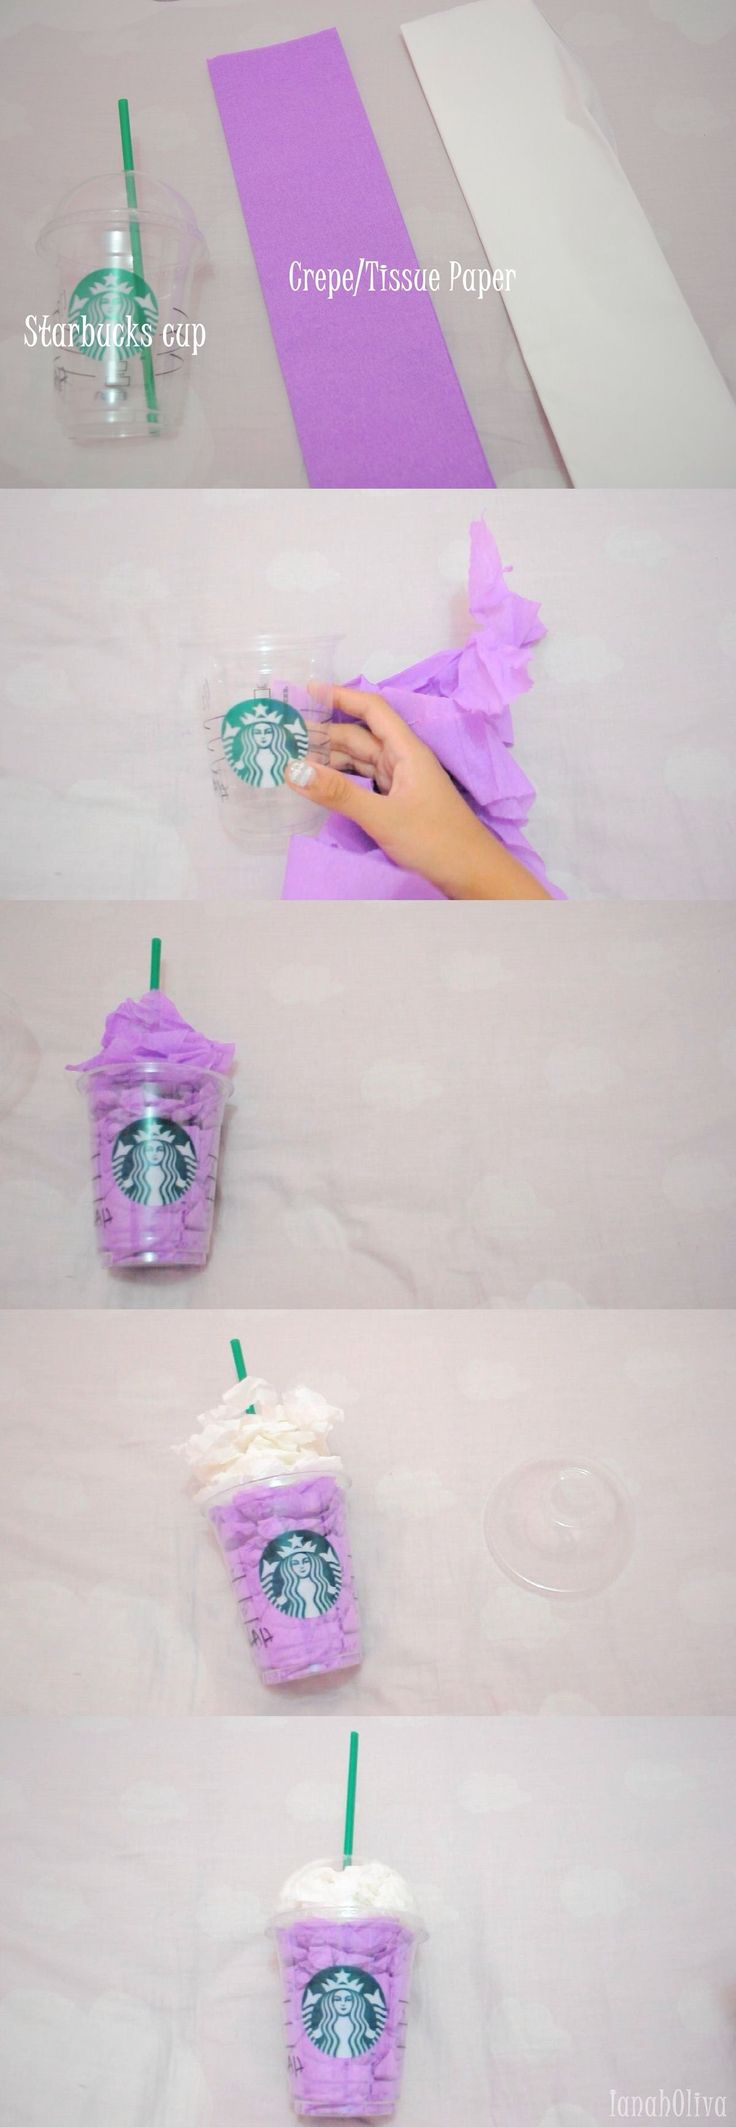 best images about common white girl my life diy room decor starbucks cup